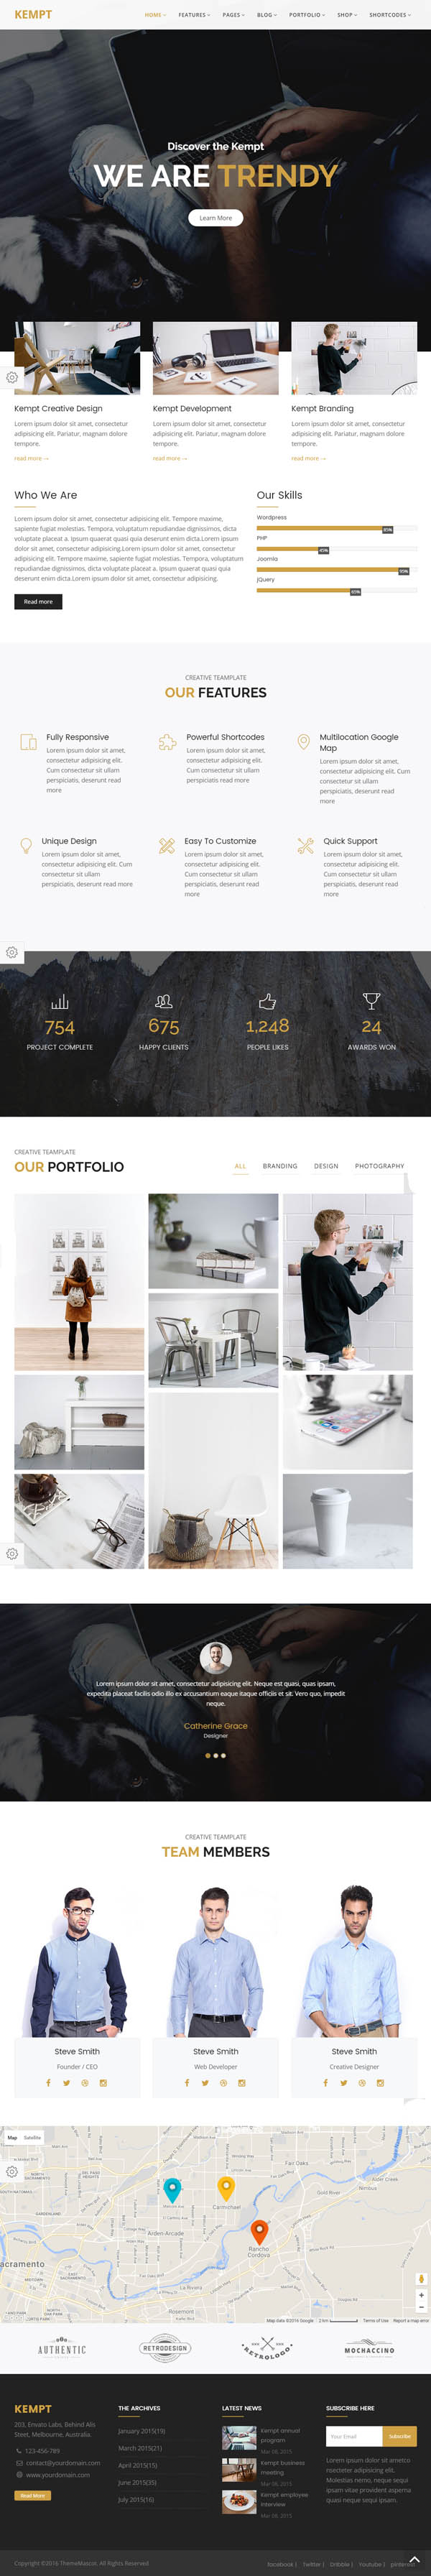 Kempt - Creative Multi Concept HTML5 Template